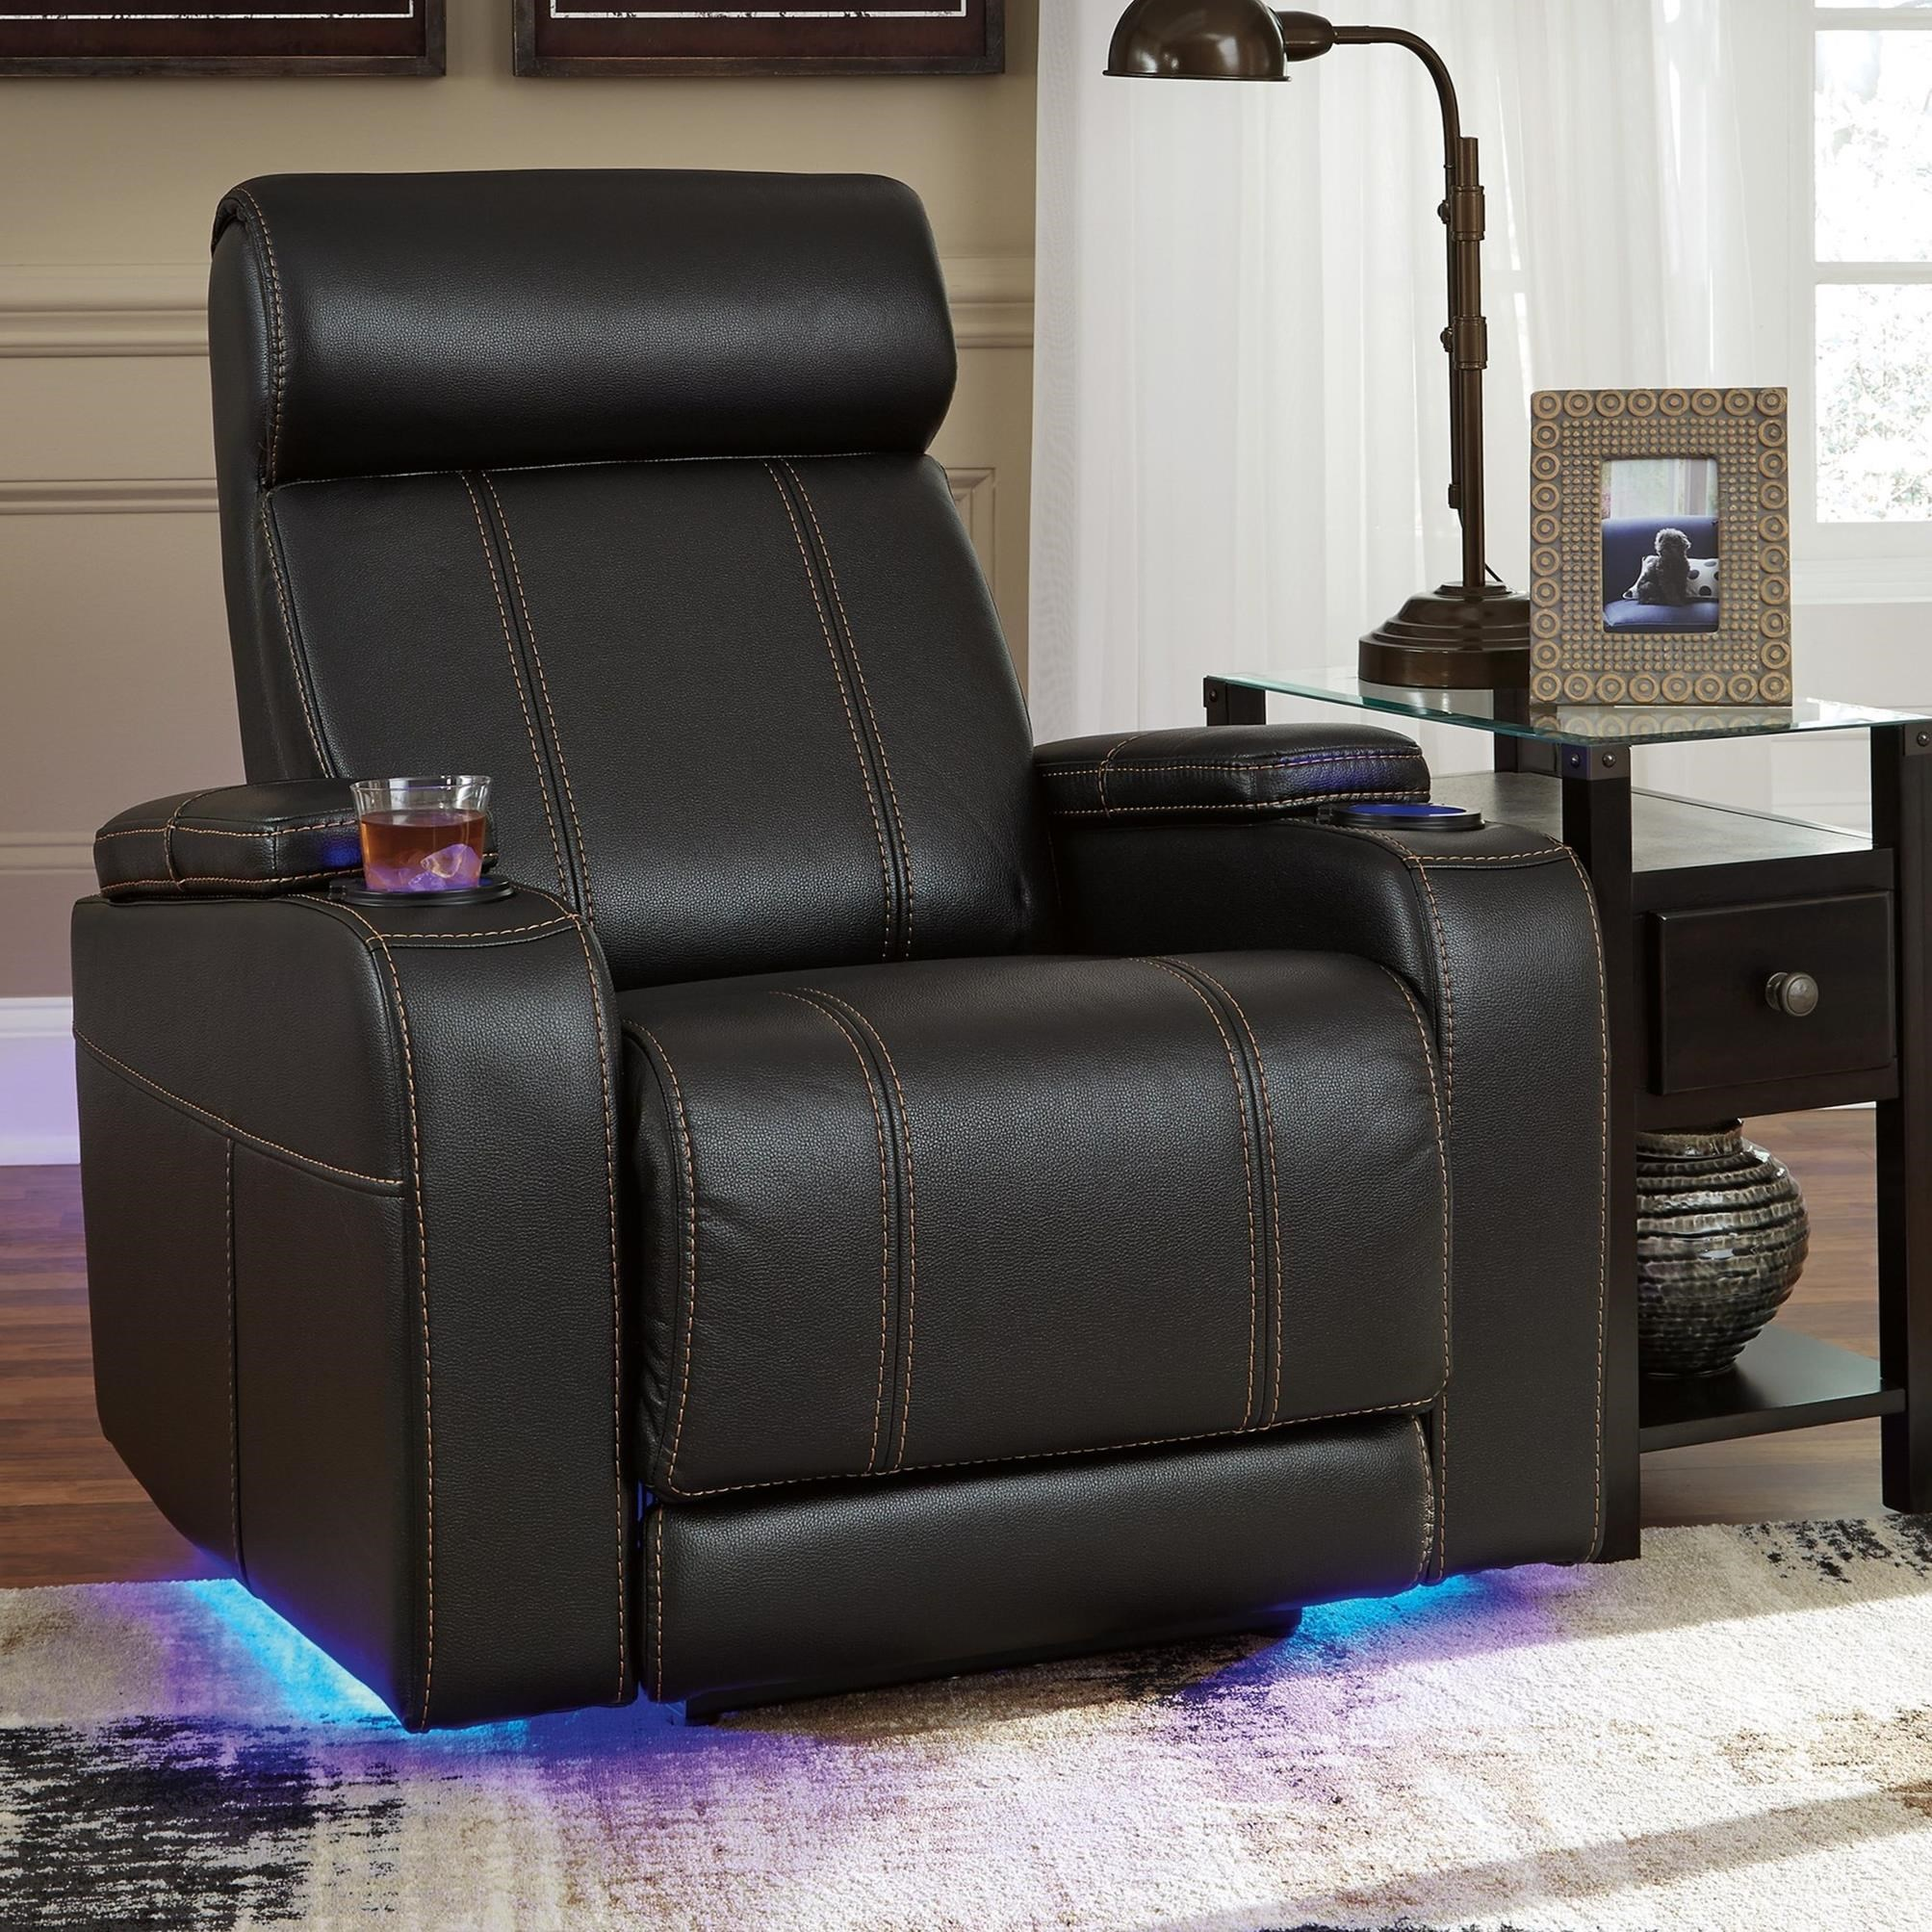 Signature Design By Ashley Boyband Faux Leather Power Recliner With Cup  Holders, Storage, Cup